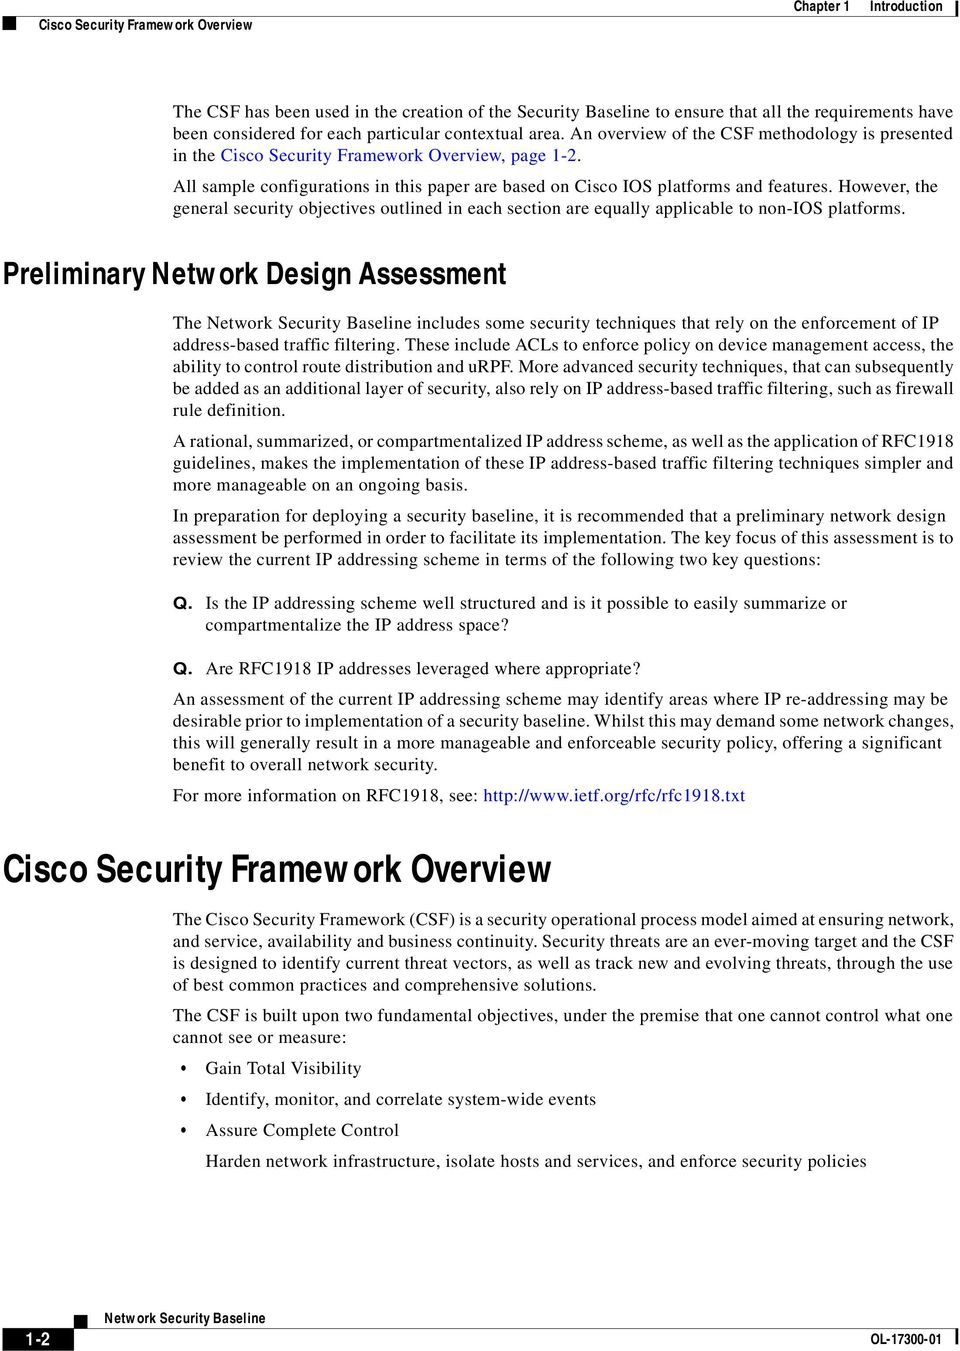 All sample configurations in this paper are based on Cisco IOS platforms and features. However, the general security objectives outlined in each section are equally applicable to non-ios platforms.